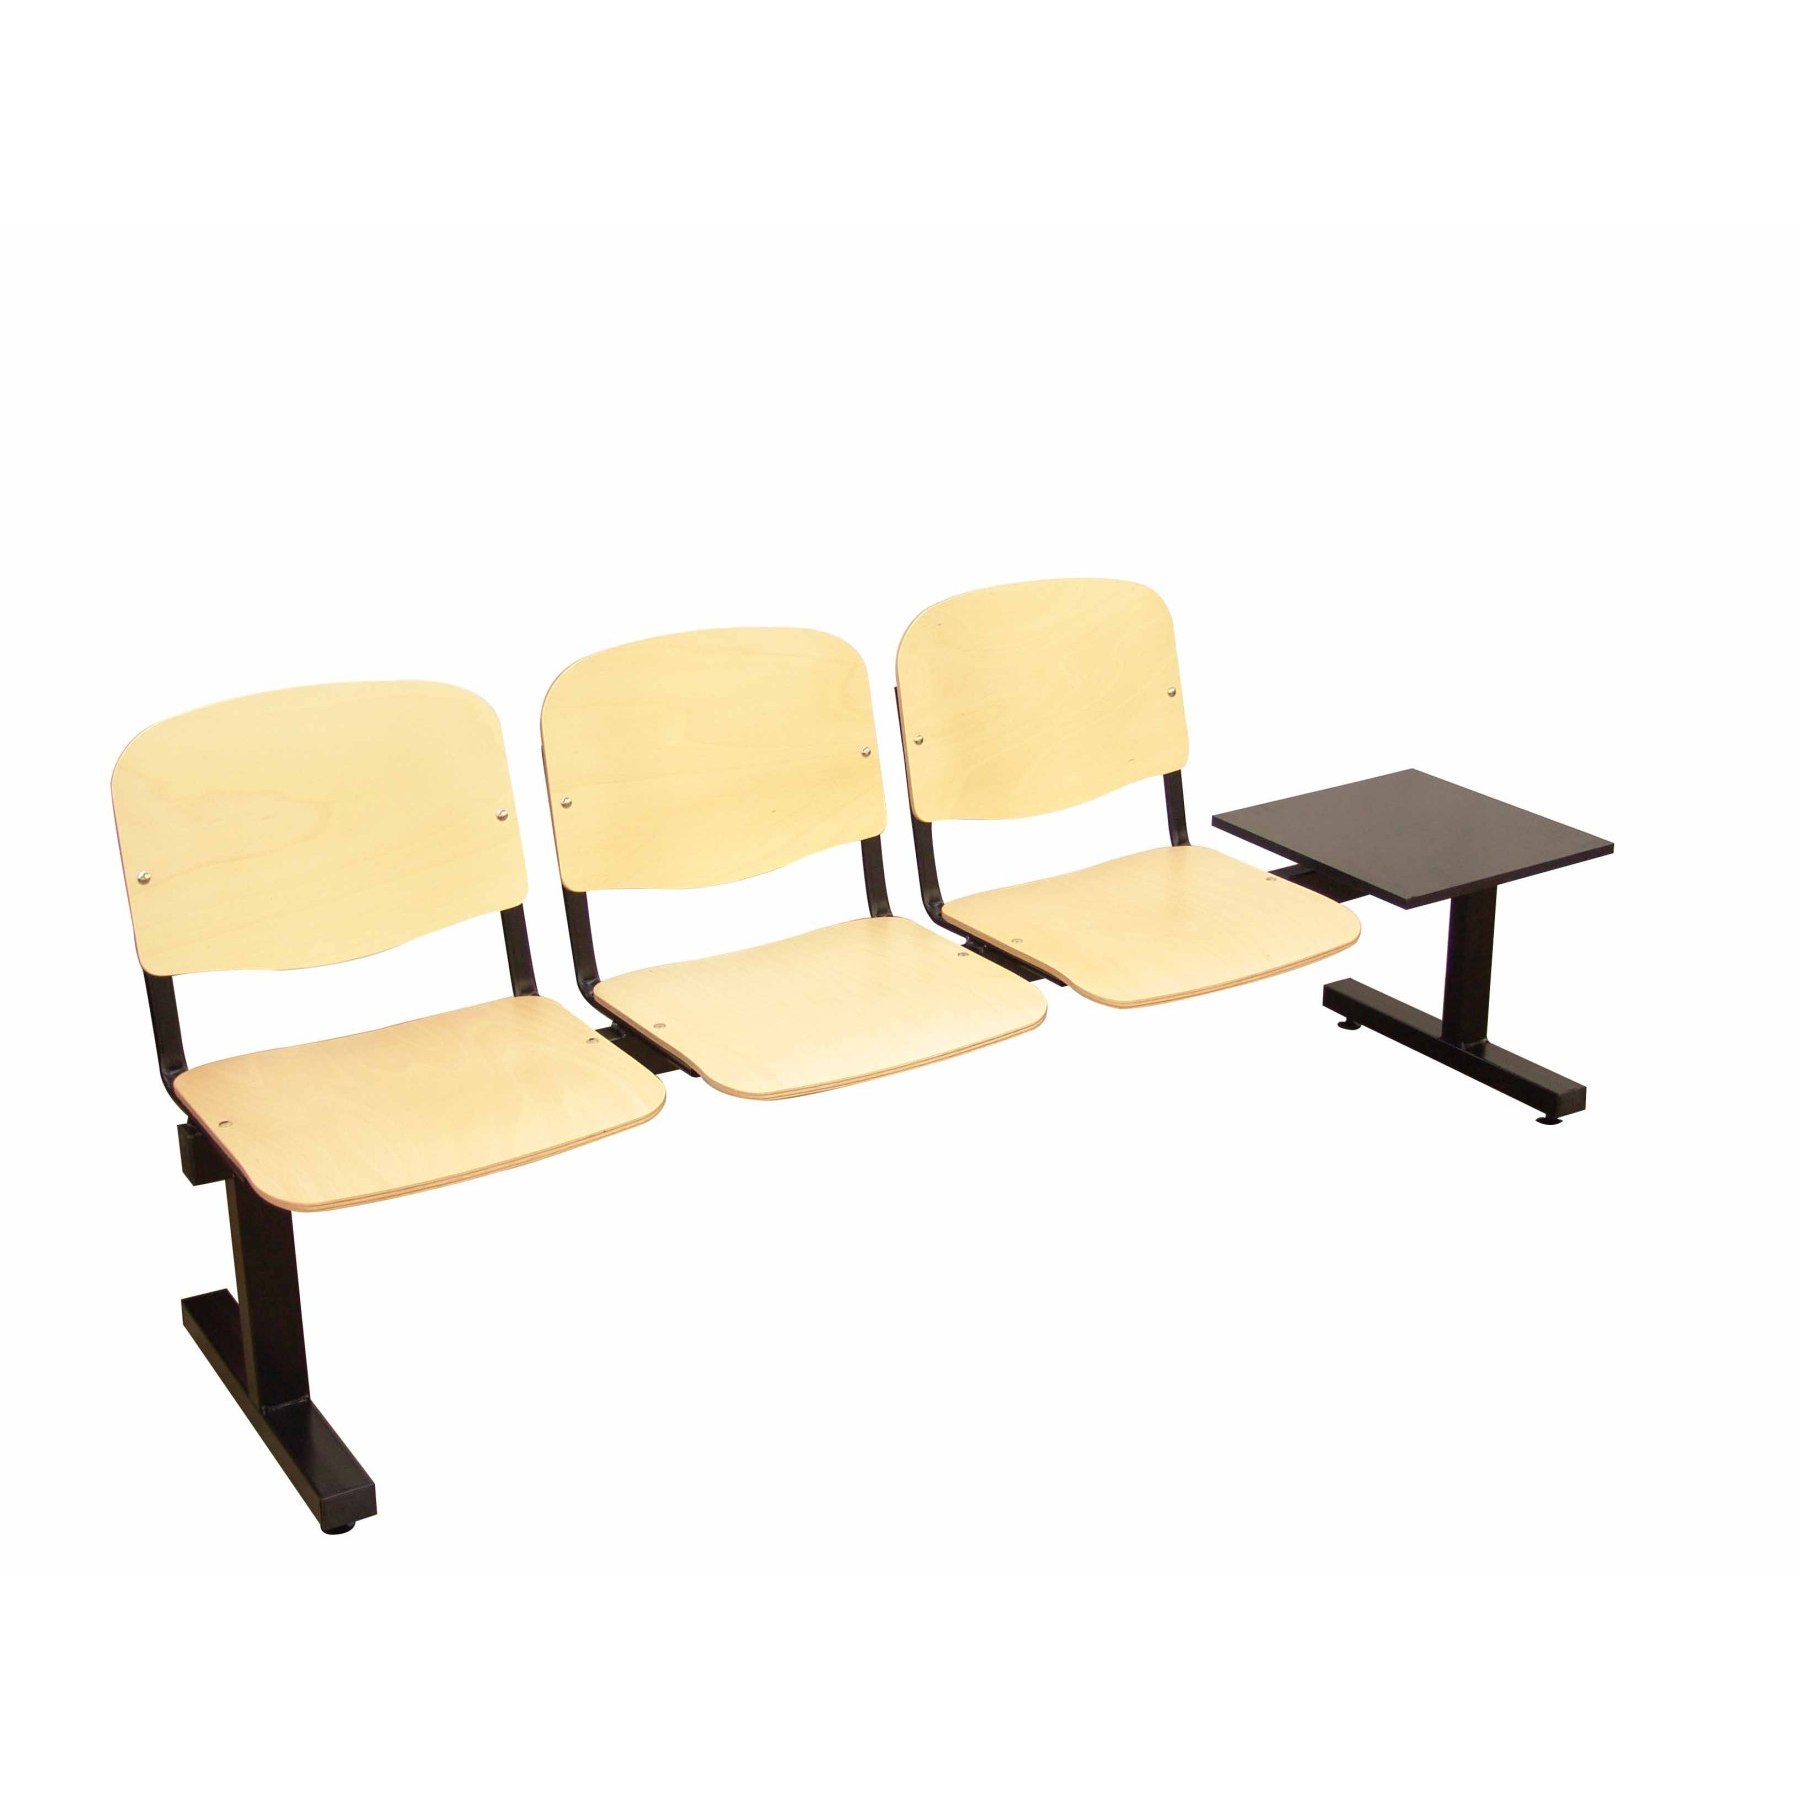 Bed Standby Three Seater With Table And Iron Frame In Black Color Seat And Back WOOD Beech Color